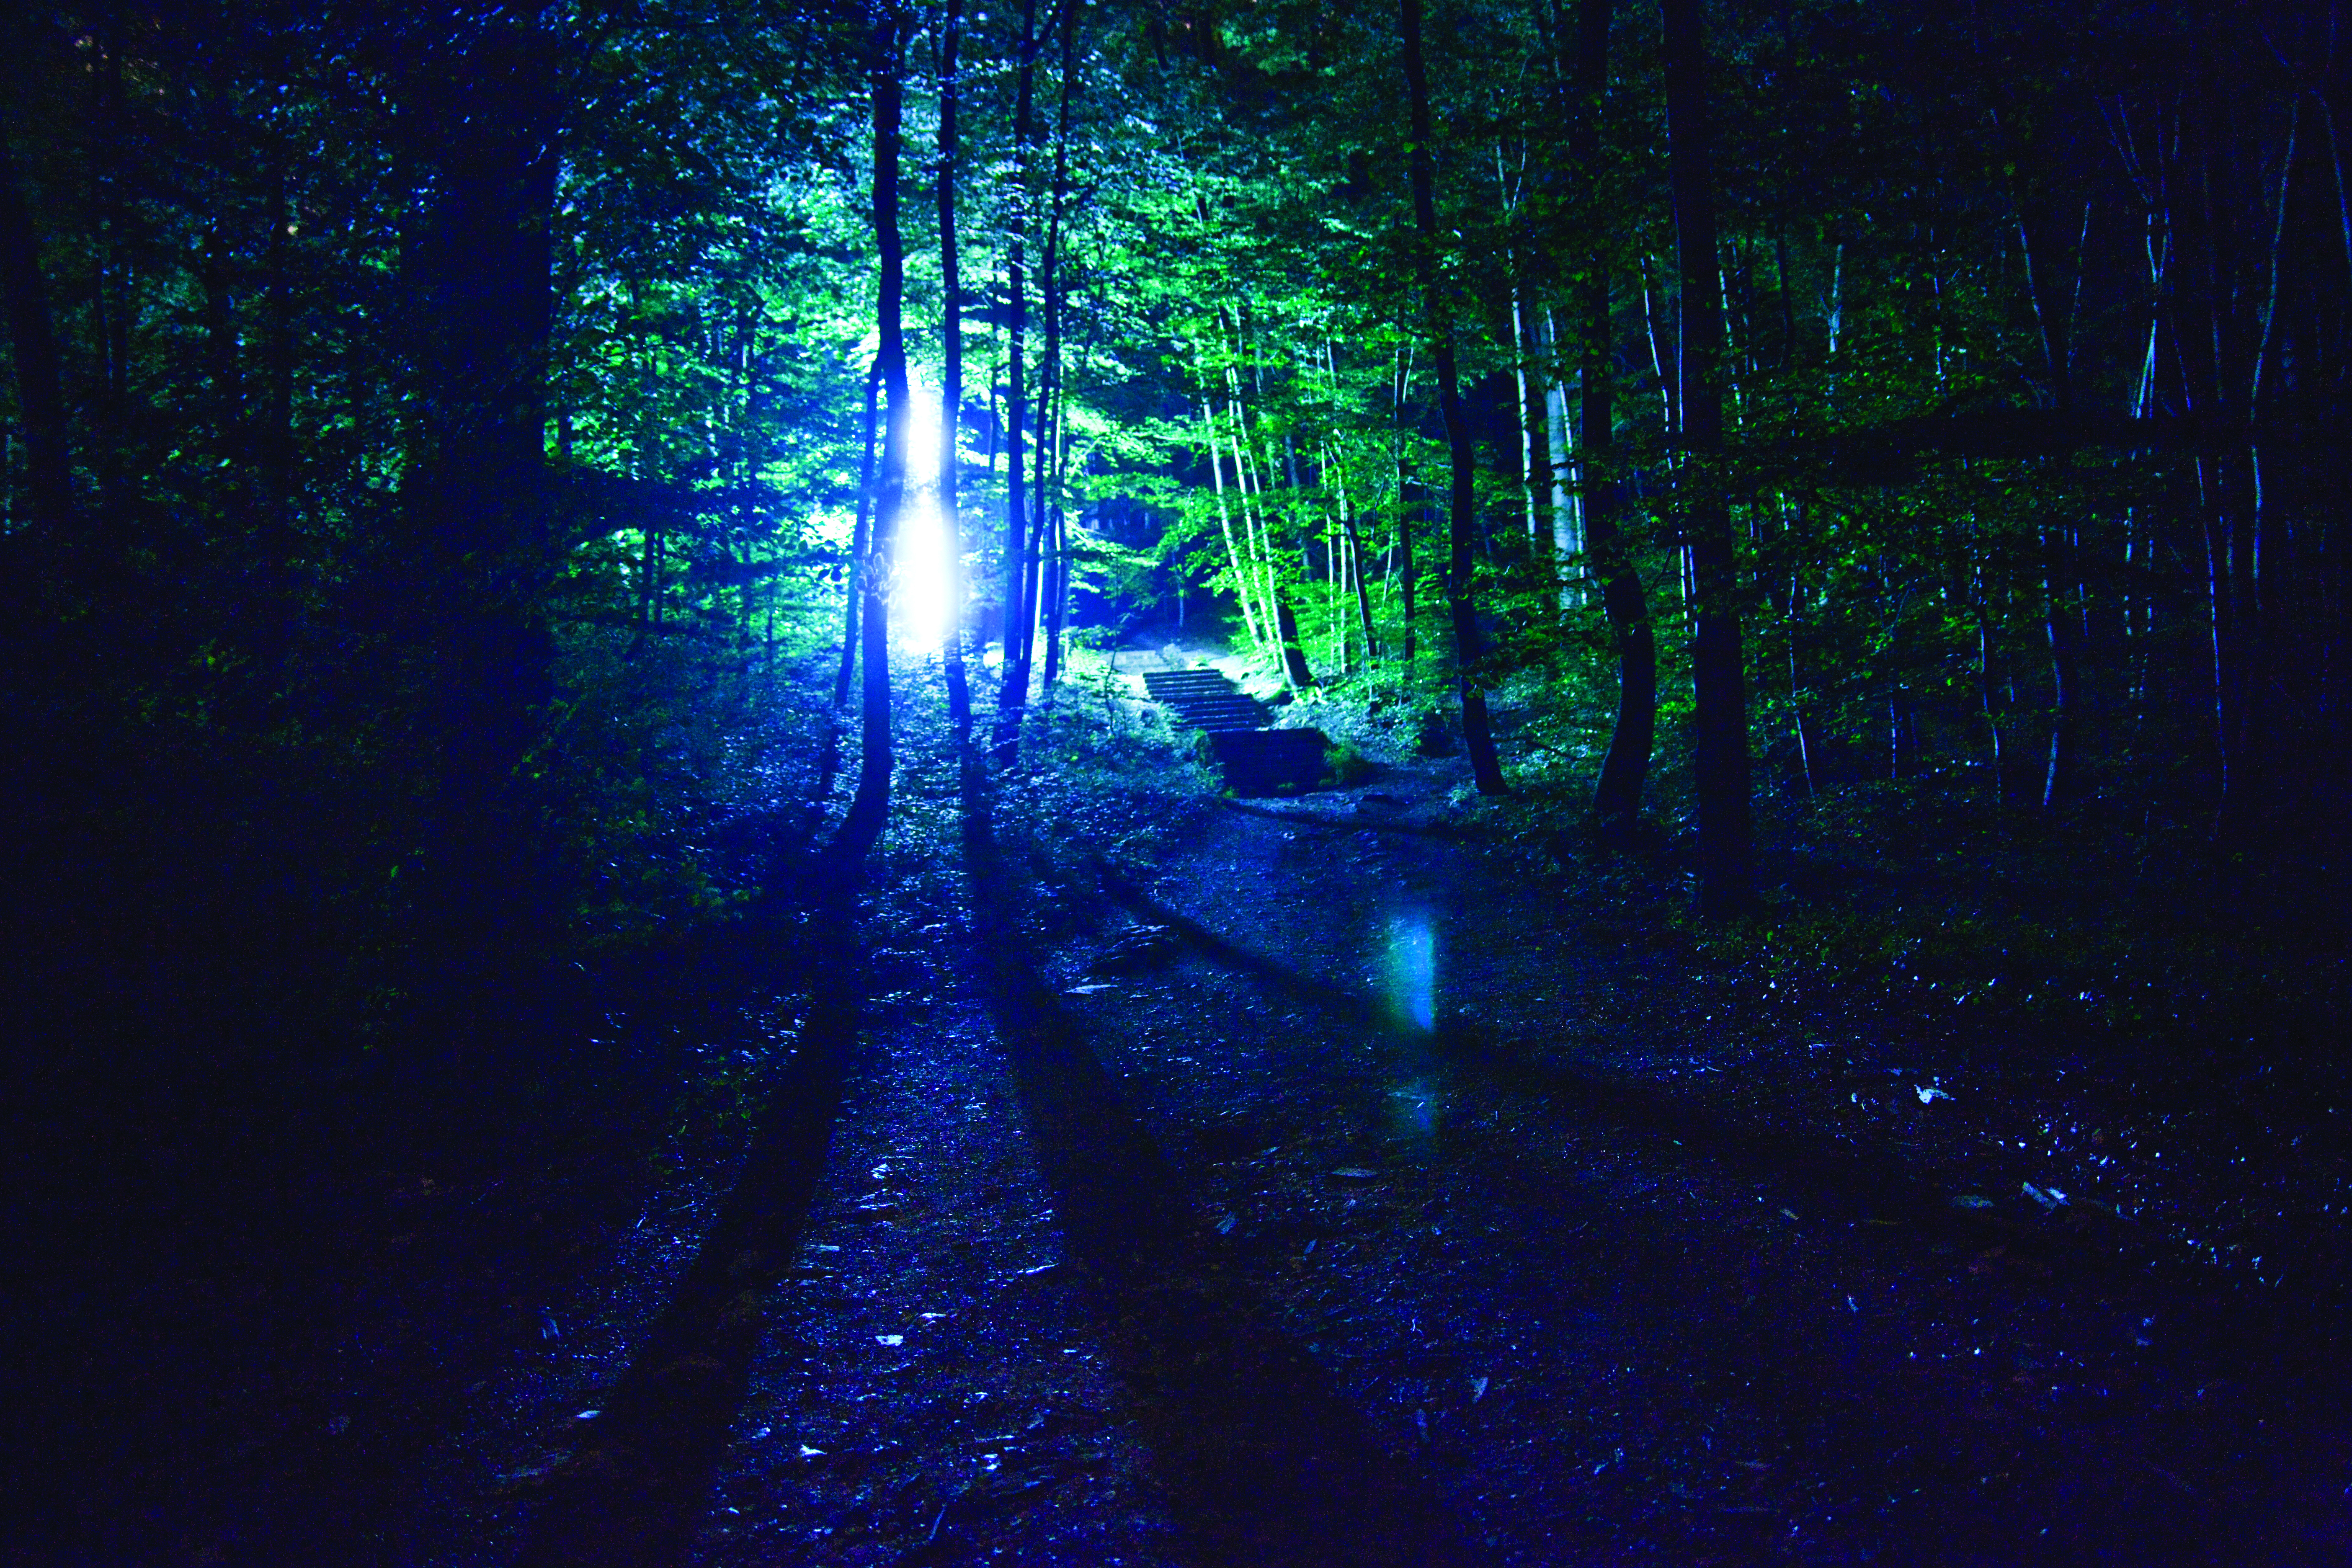 image of a forest dramatically backlit at night from Mette Ingvartsen's The Light Forest PRoject